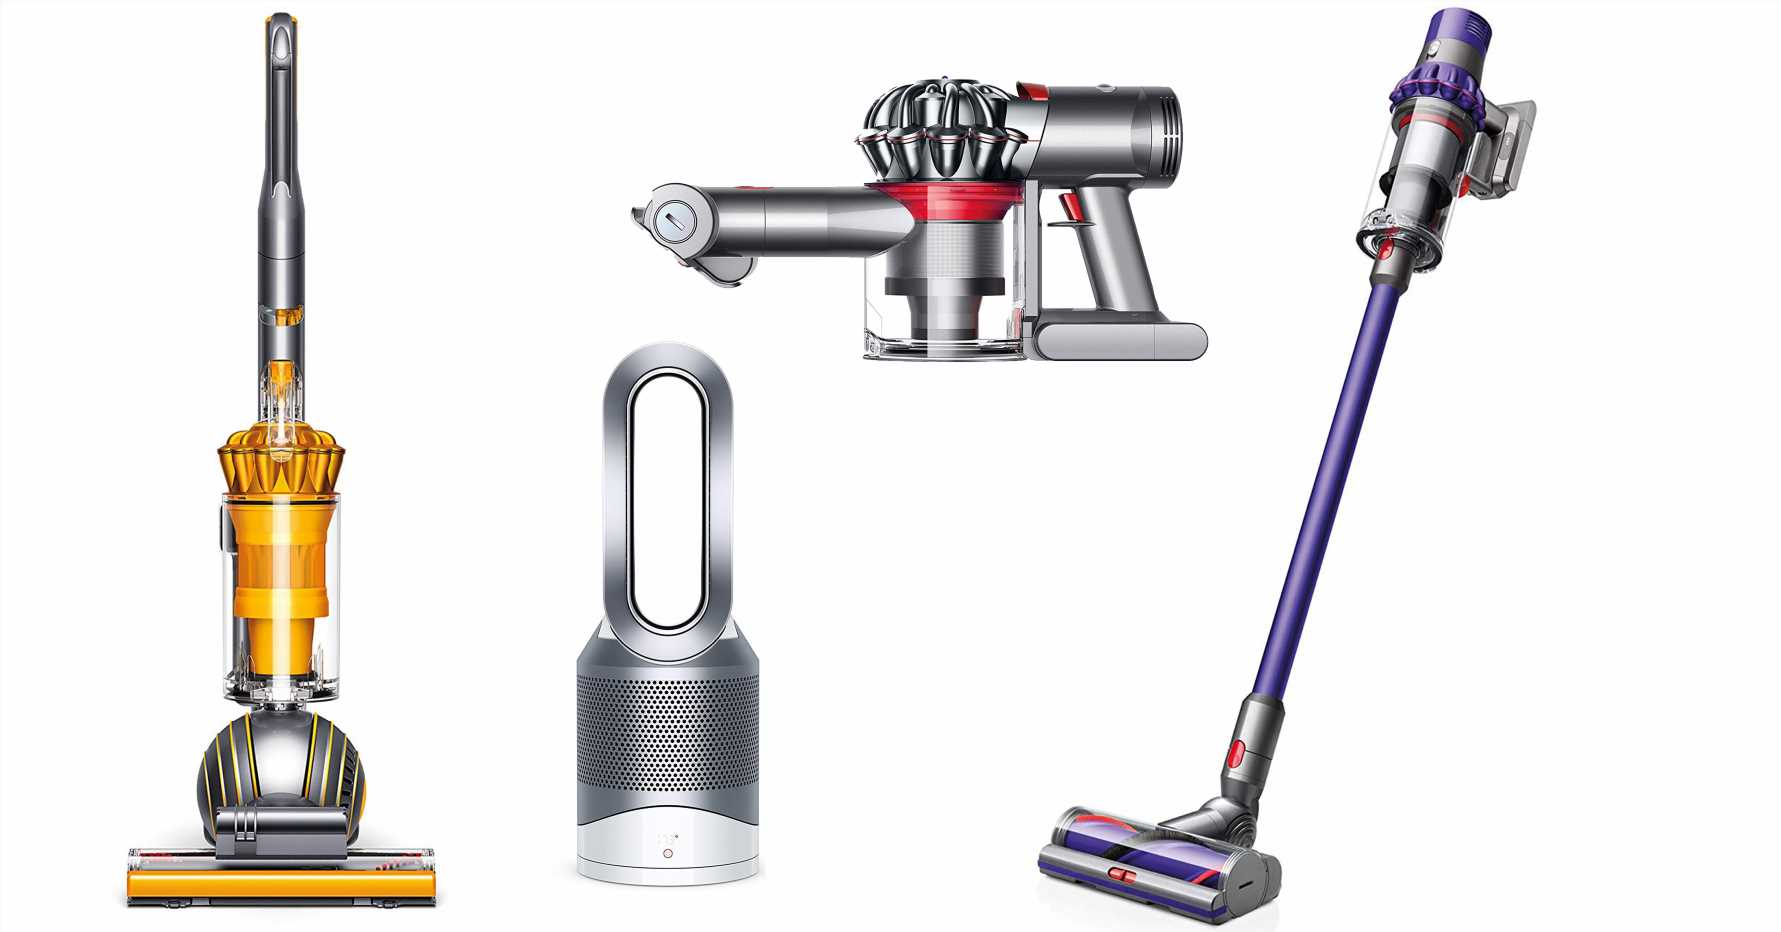 Dyson Vacuums Are Up to 25% Off on Amazon Weeks Ahead of Prime Day